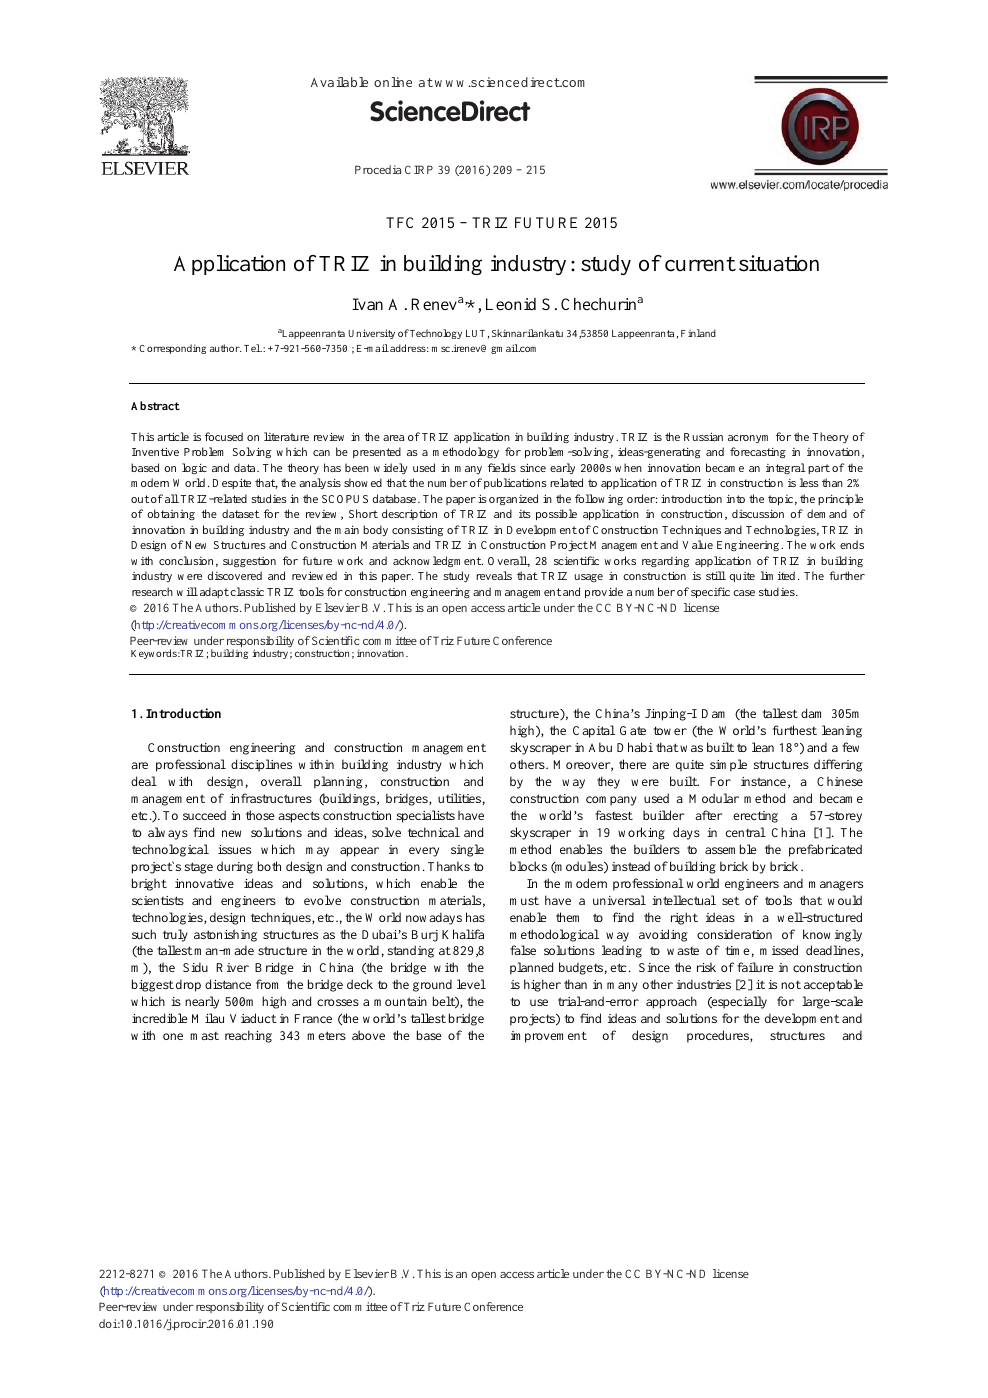 Application of TRIZ in Building Industry: Study of Current